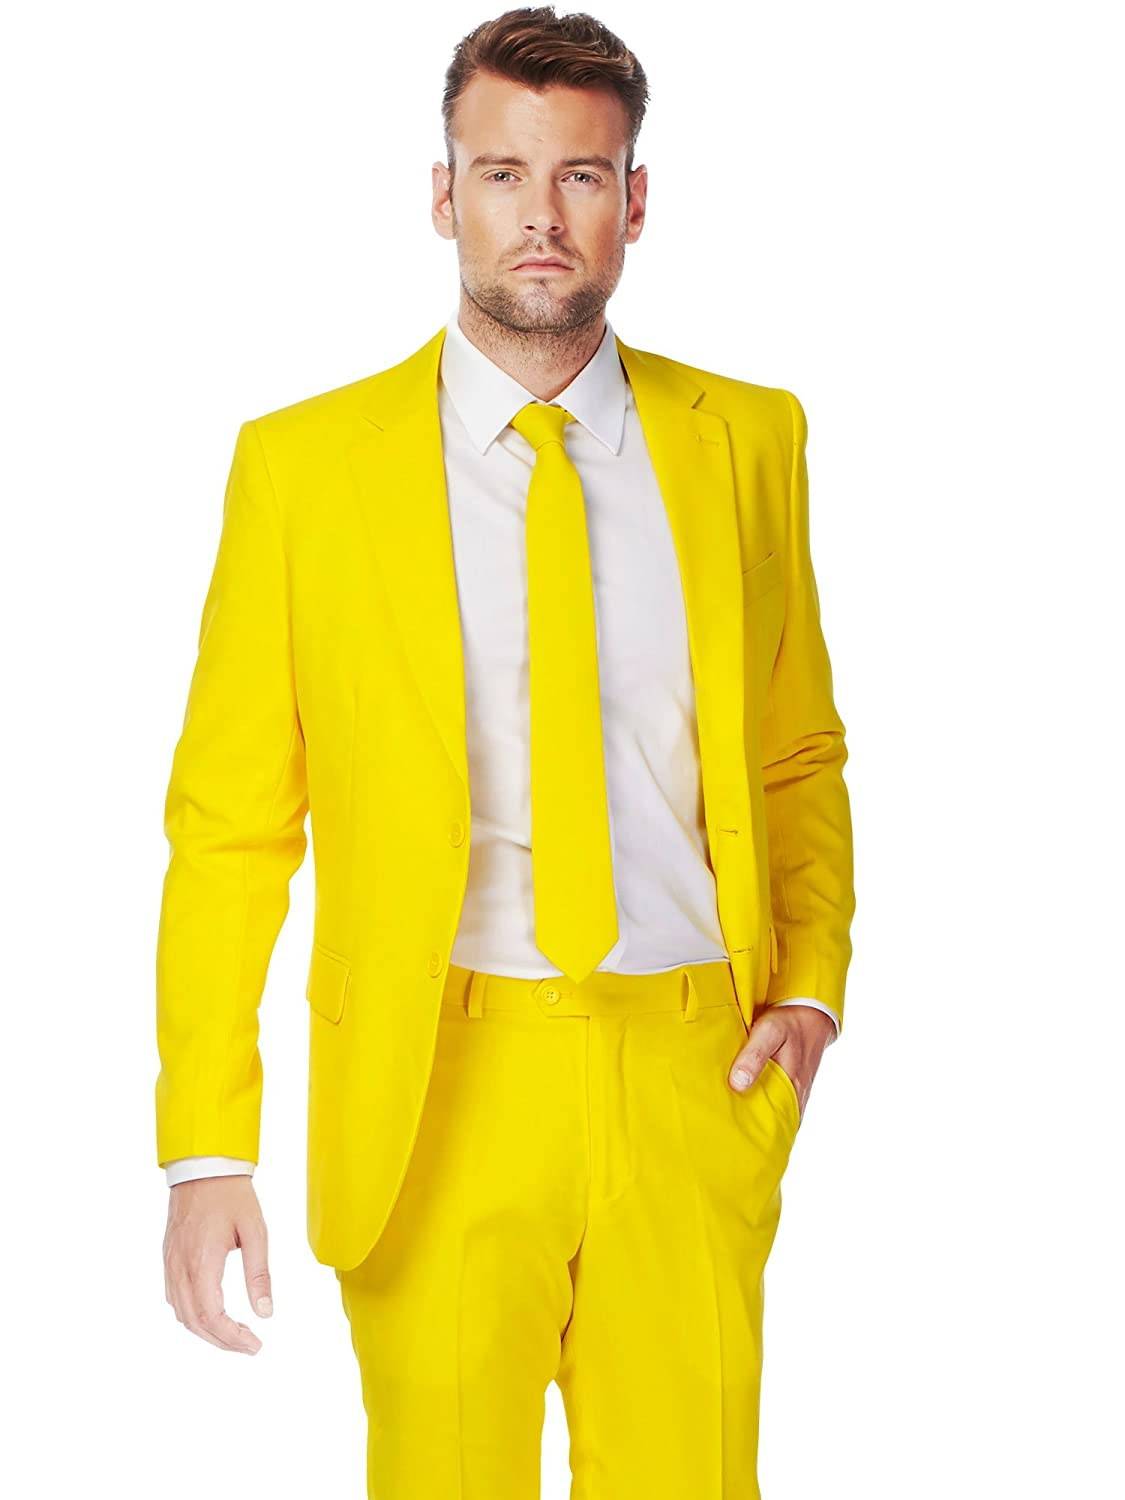 OppoSuits Yellow Fellow Solid Yellow Suit For Men Coming With Pants, Jacket and Tie - 100% Money Back Guarantee Generique OSUI-0026-EU48